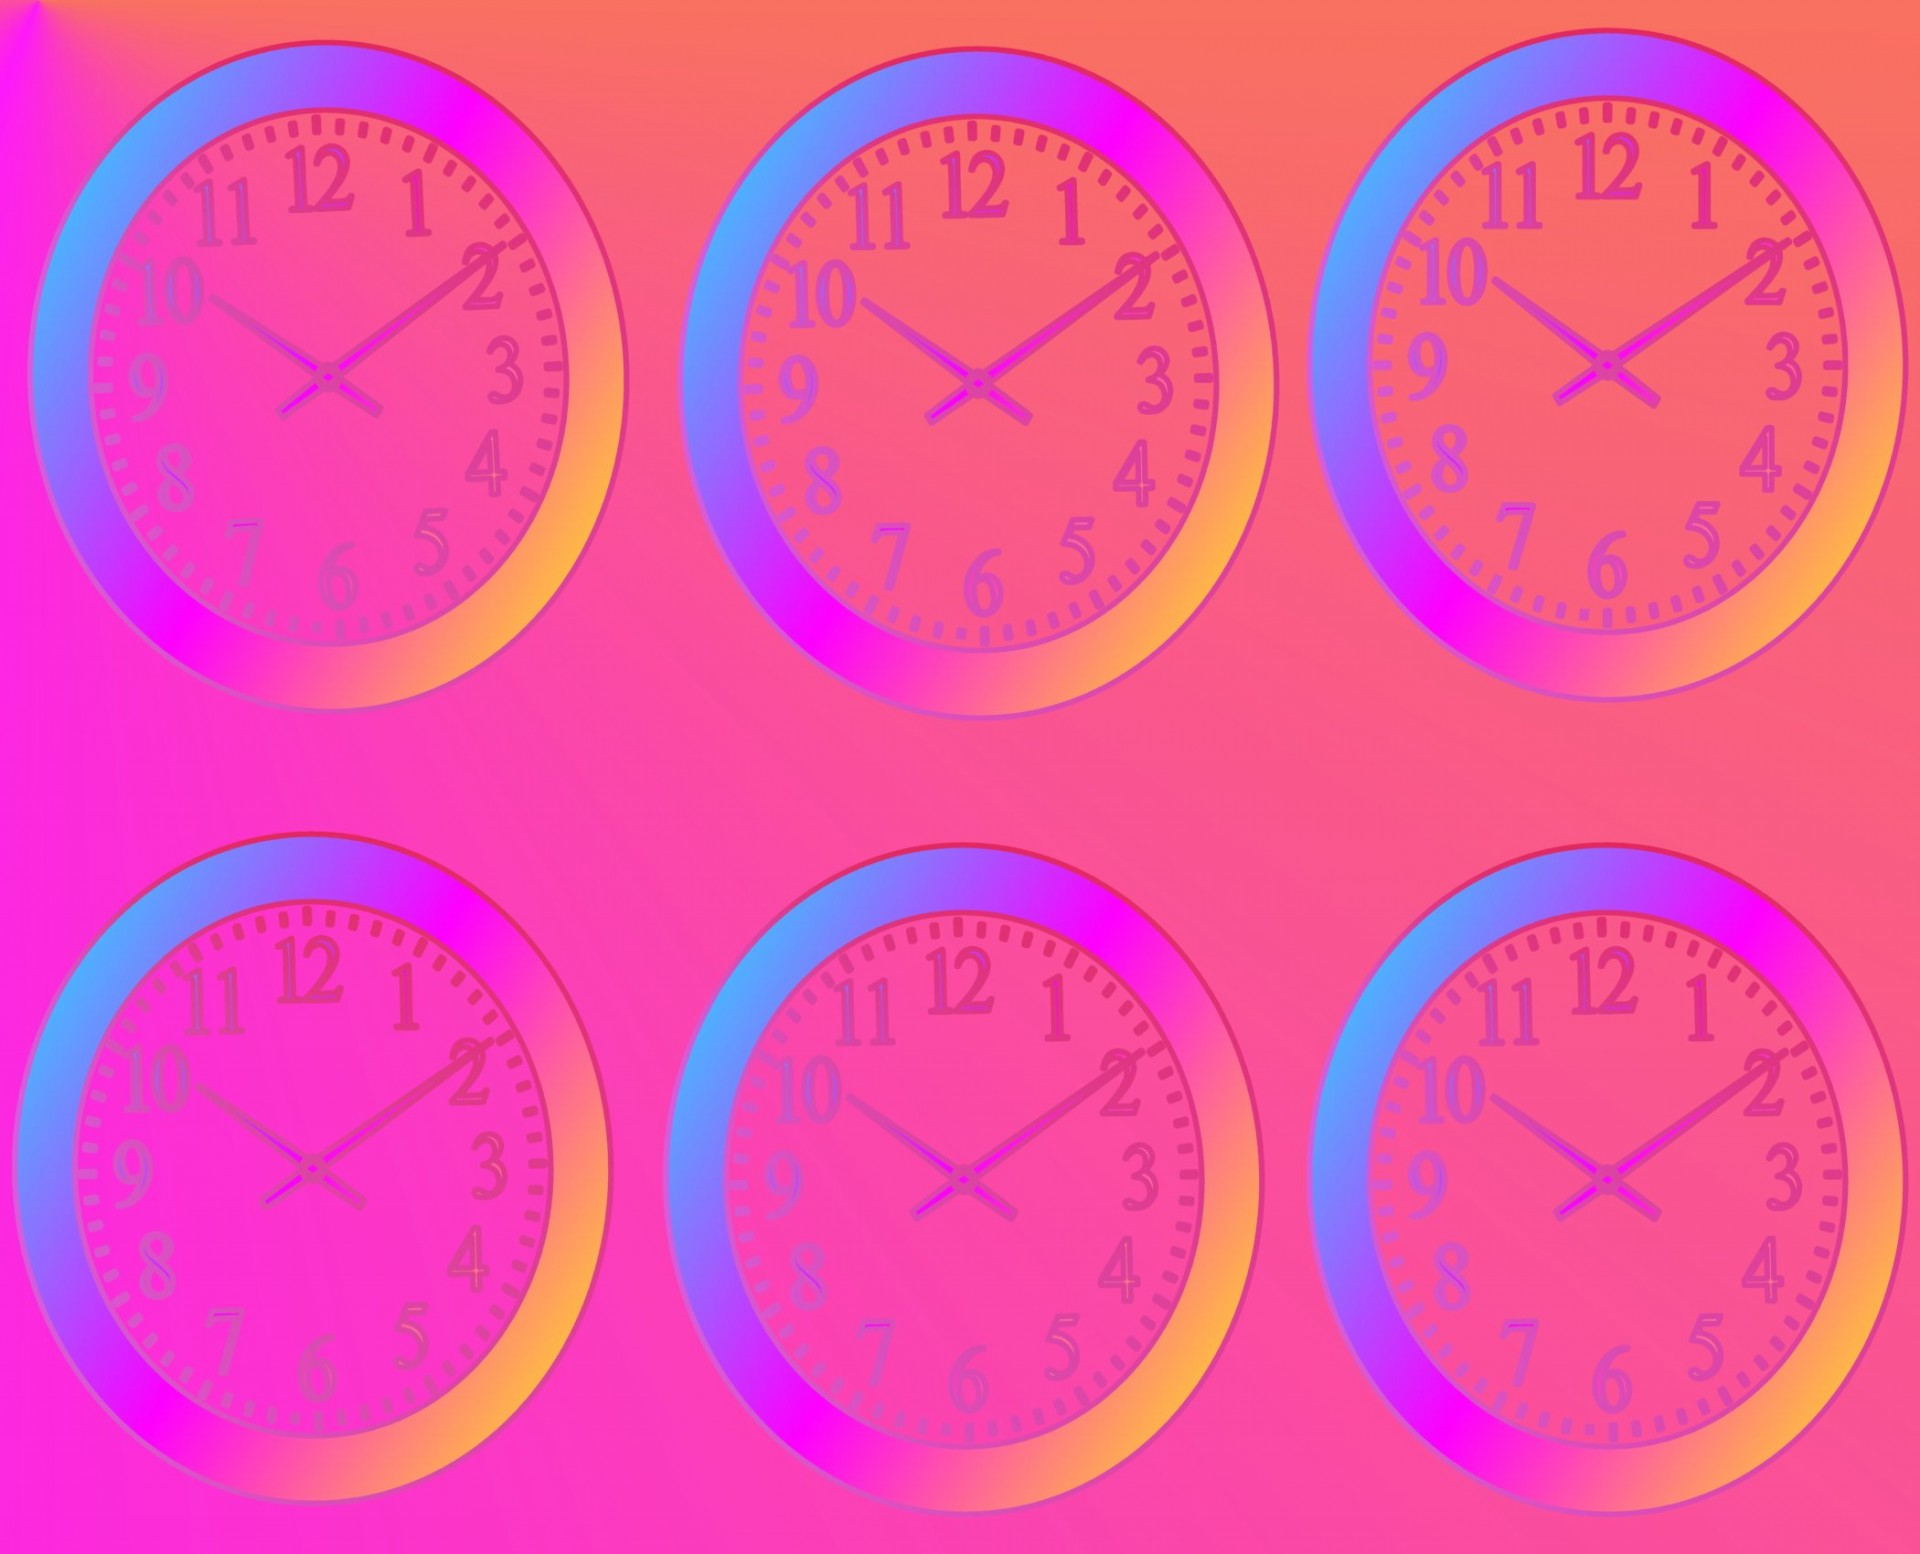 Colorful Wall Clock Clip Art Free Stock Photo.